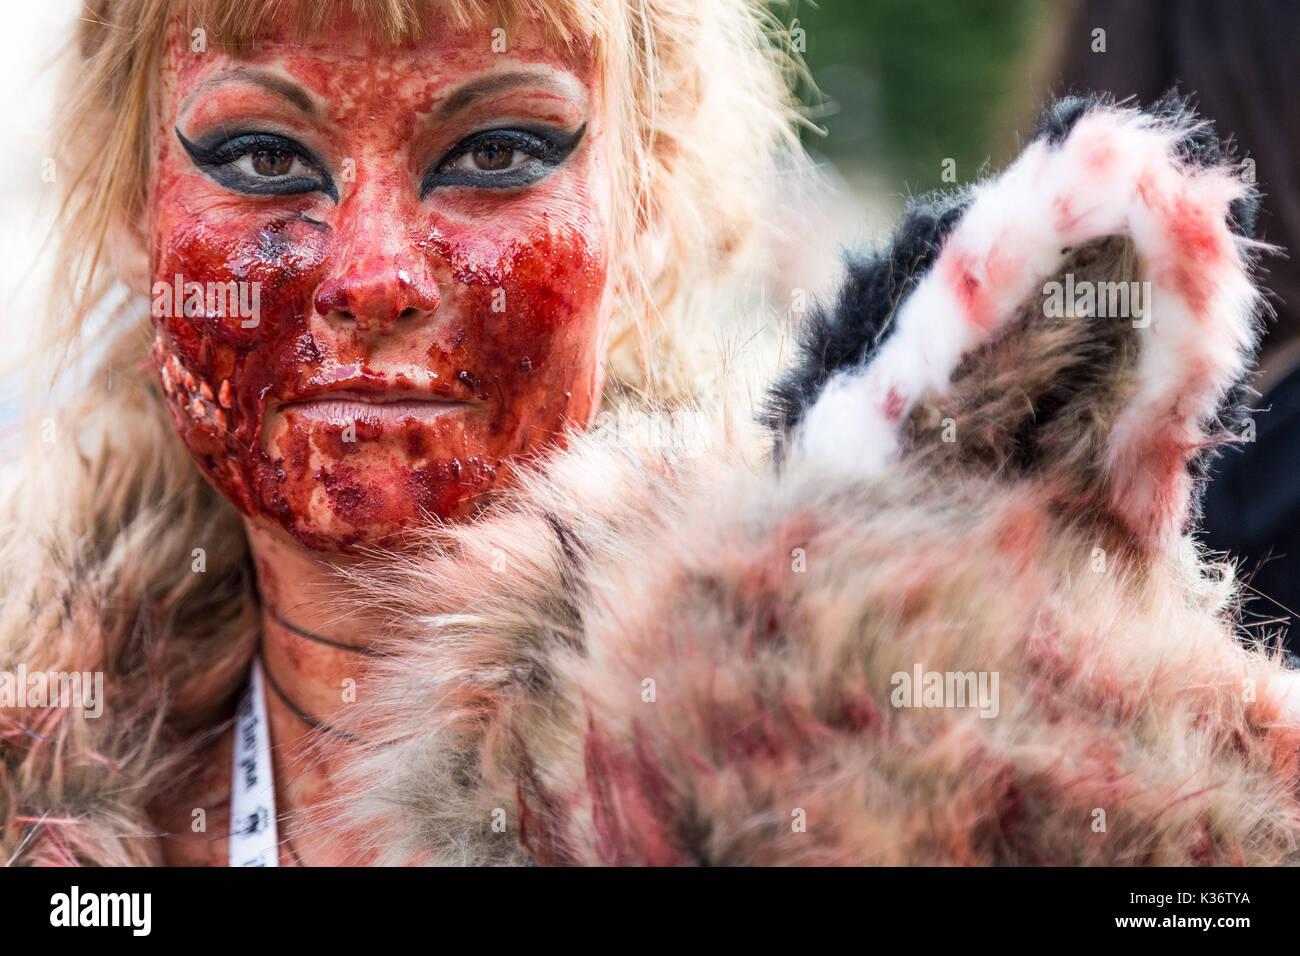 London, UK. 2nd September, 2017. Official Animal Rights March. Several thousand vegans and other animal rights supporters gather in Hyde Park ready to march through central London calling for an end to killing animals for human benefit. The march was organised by Surge, HeartCure and The Save Movement UK. Credit: Guy Corbishley/Alamy Live News - Stock Image